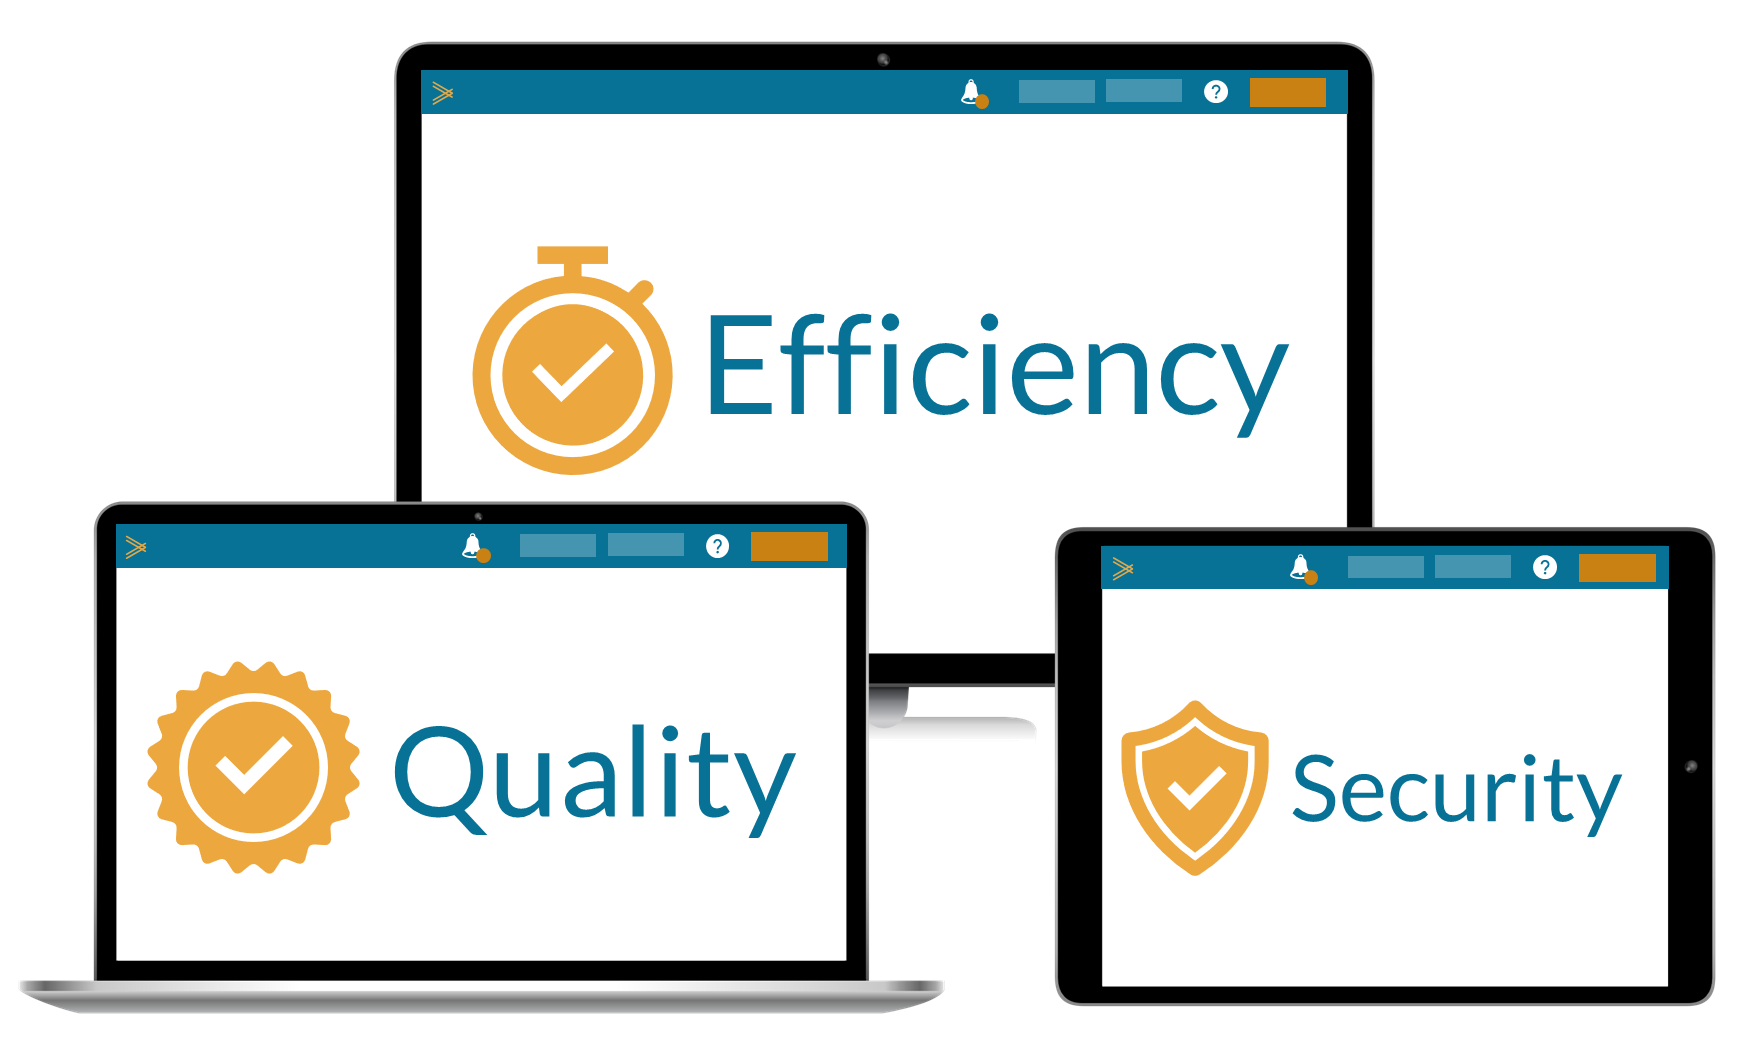 What We Do: Quality Efficiency Security